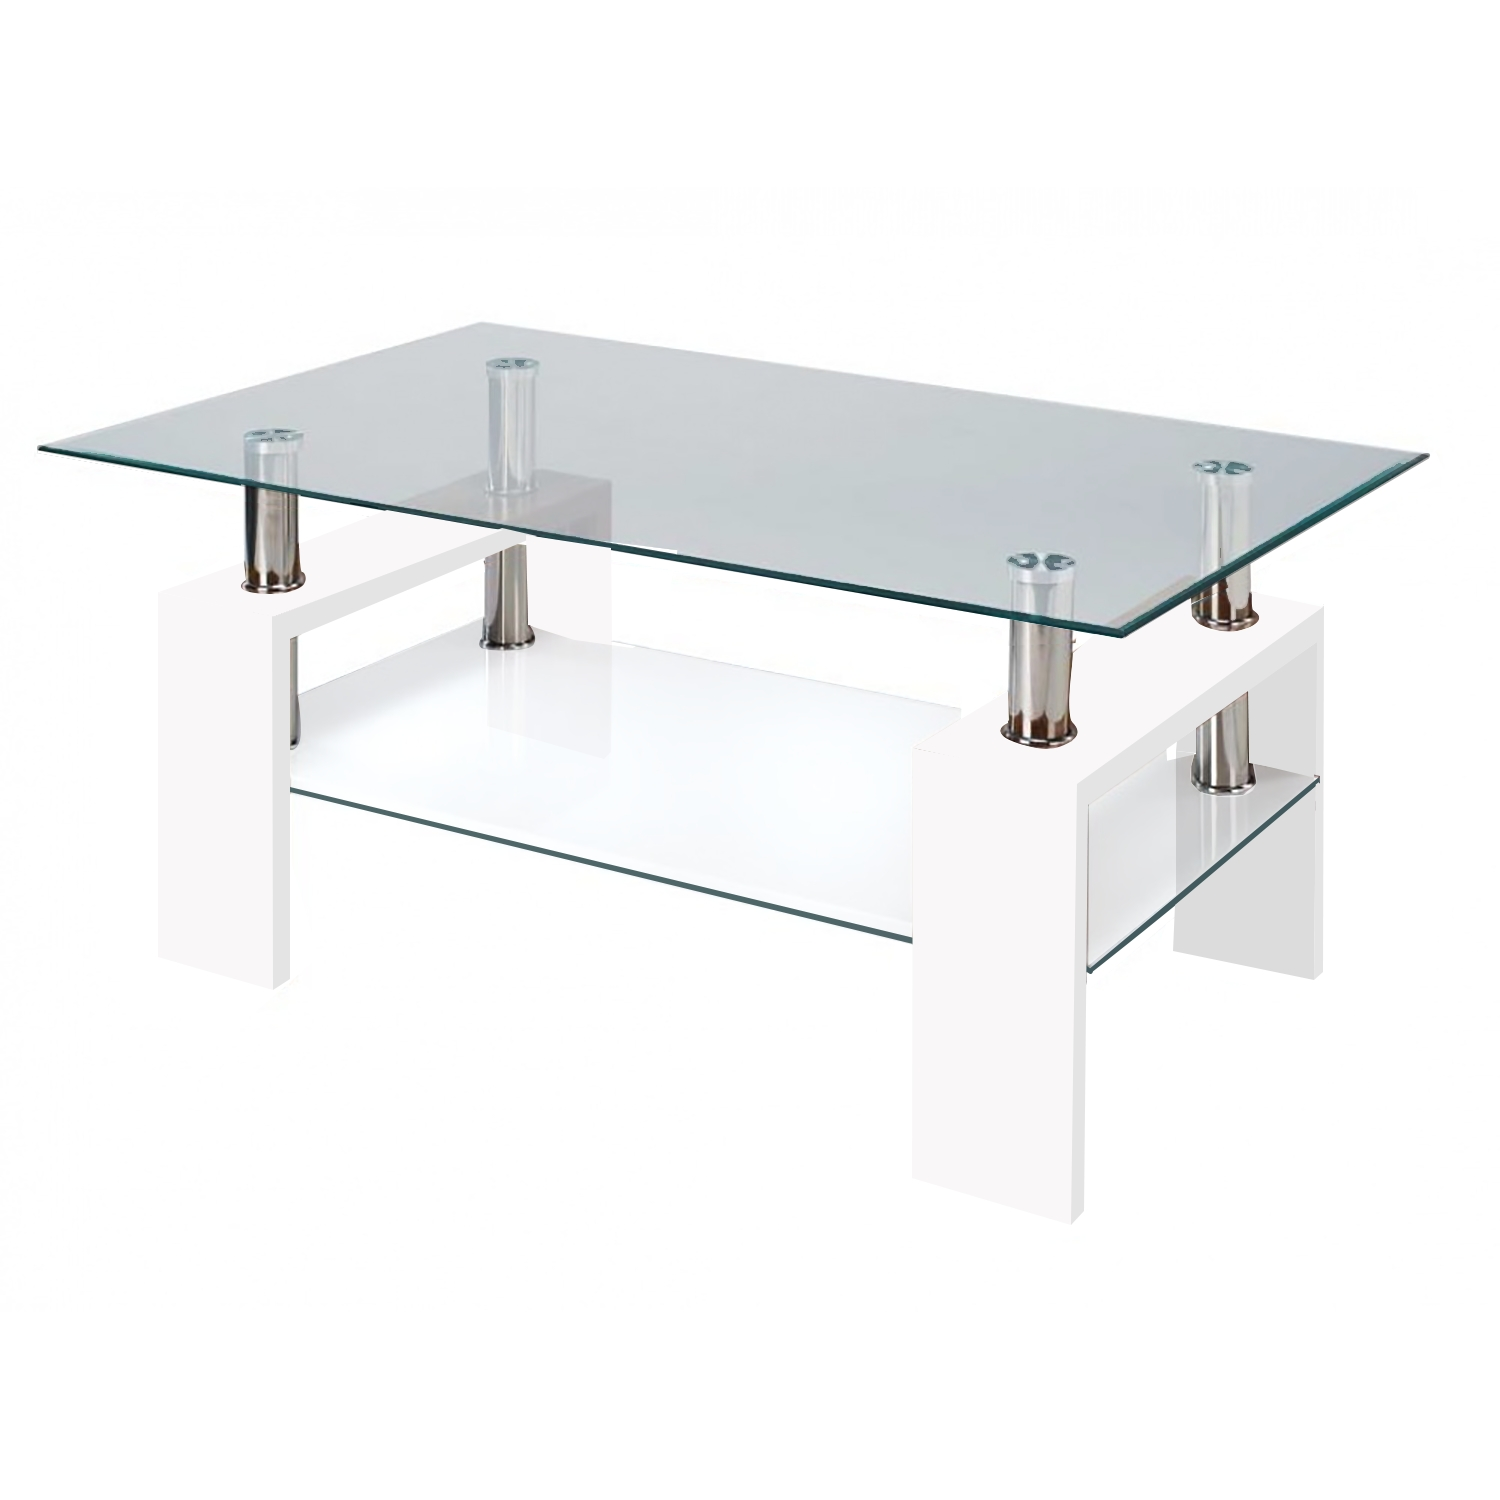 Modern Glass White Coffee Table With Shelf Contemporary inside Rectangle Glass Coffee Table (Image 11 of 15)